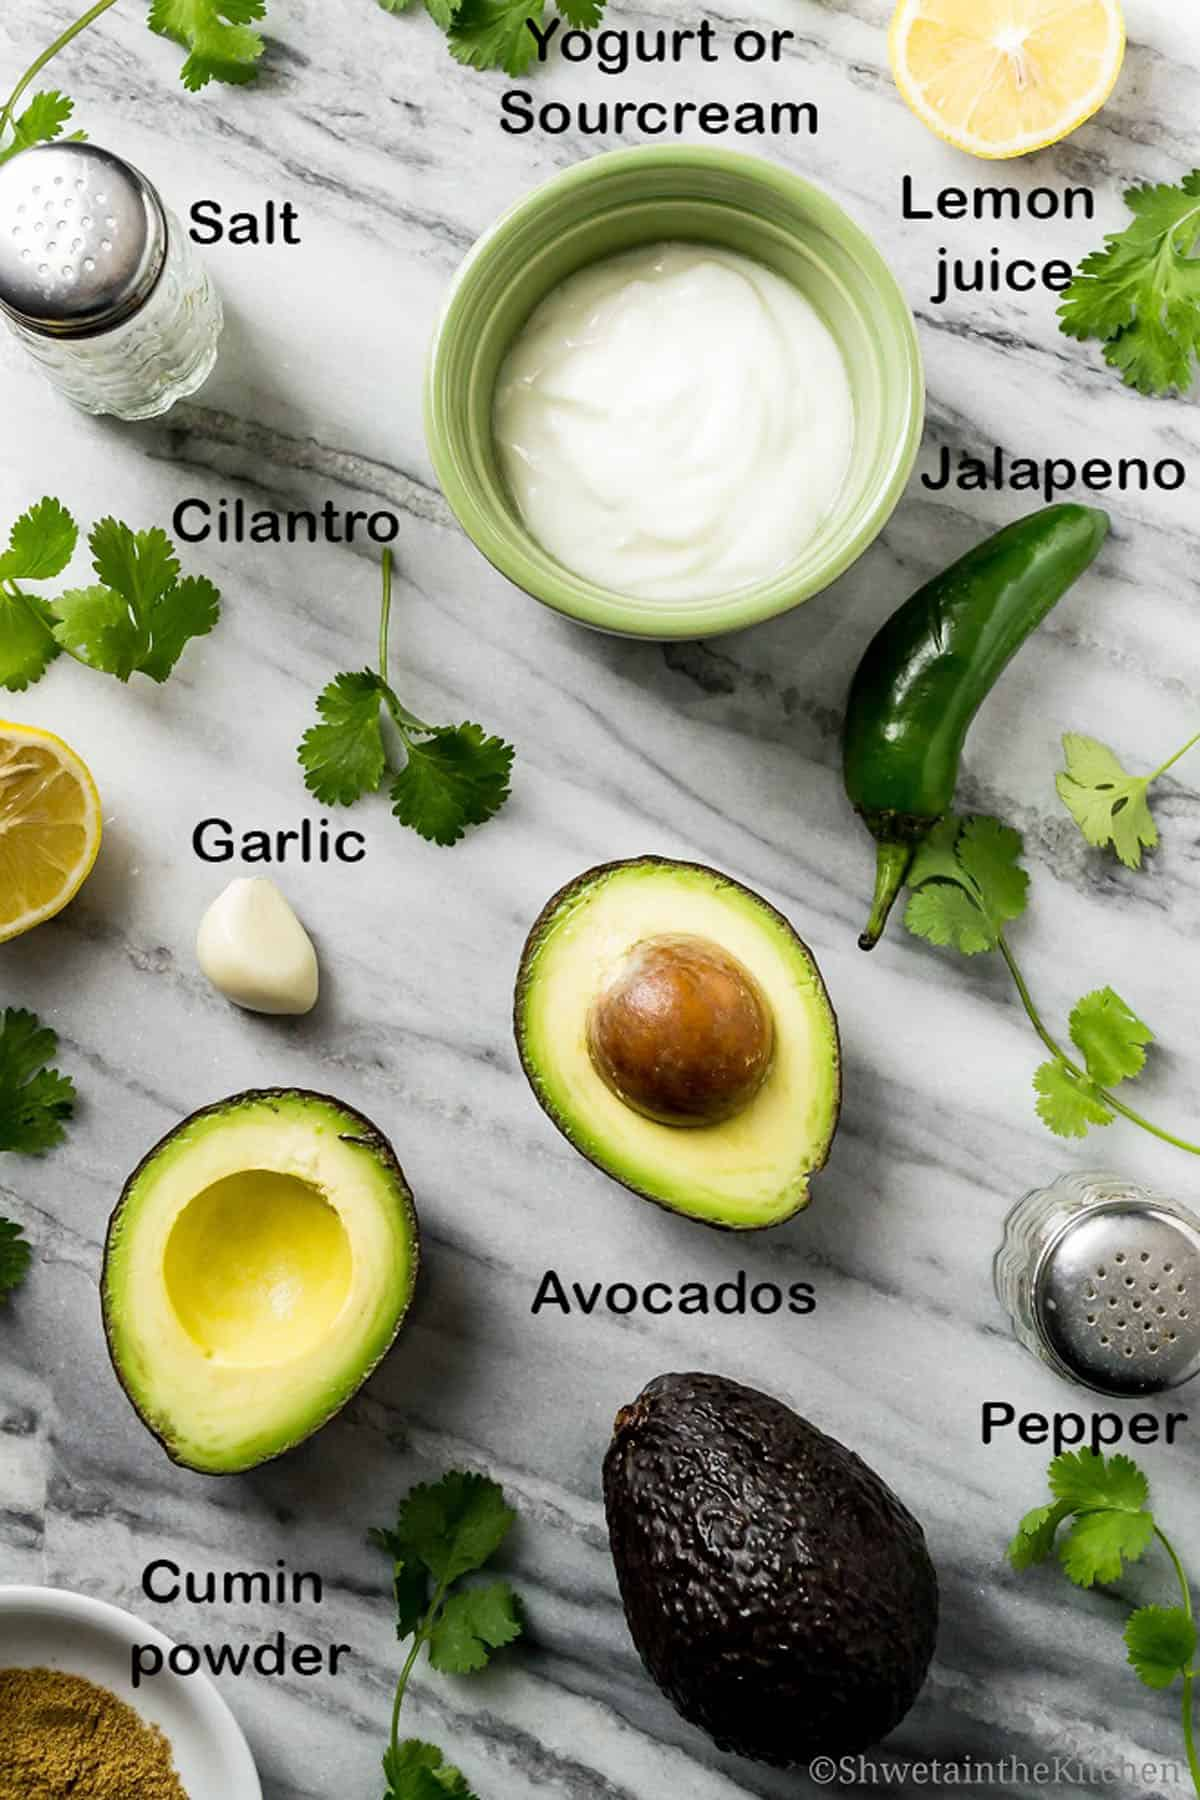 The ingredients for the avocado dip on a kitchen work surface